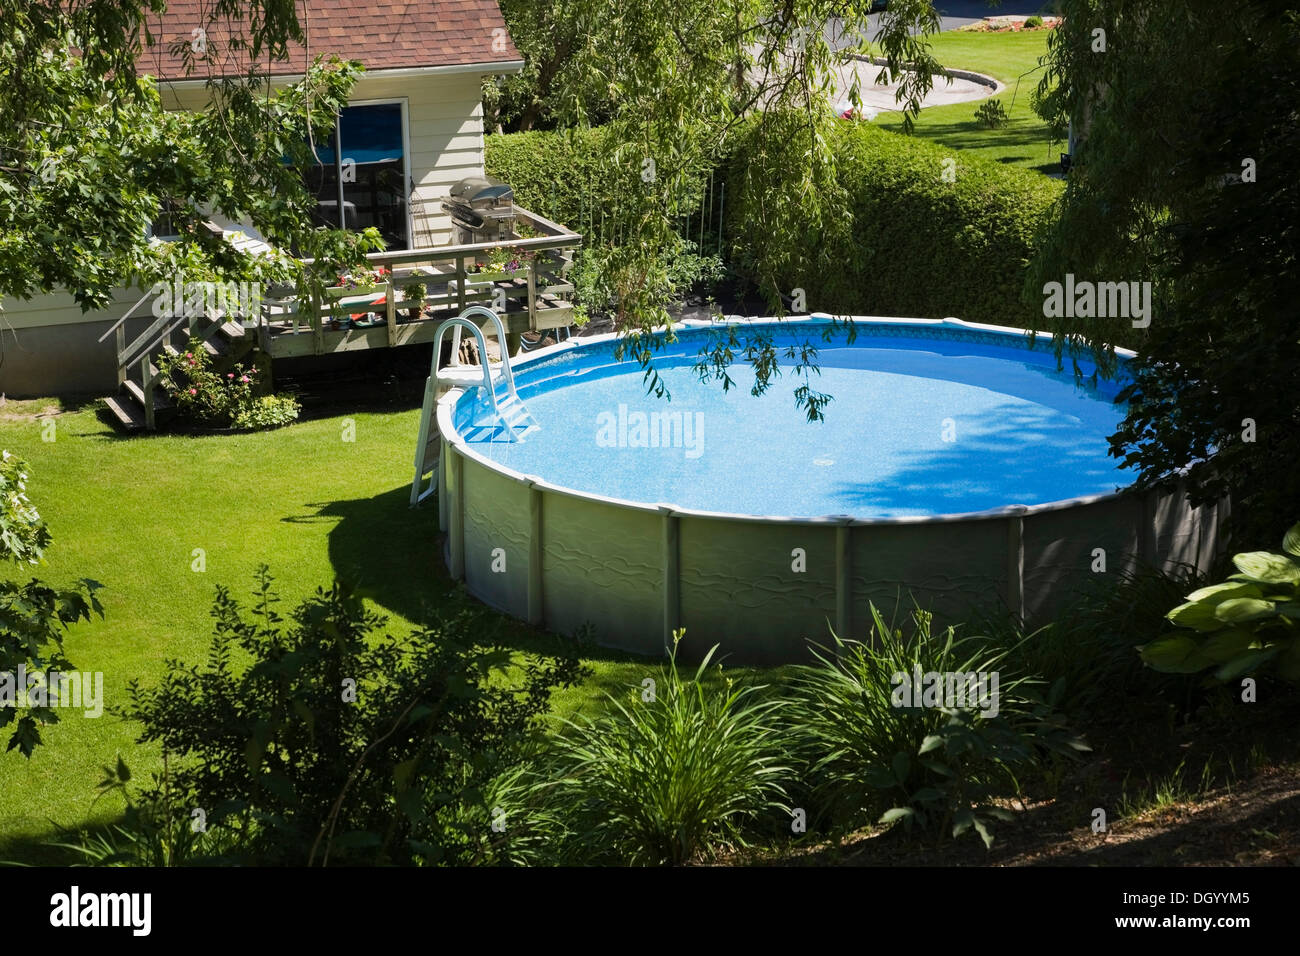 residential backyard with an above ground swimming pool and house